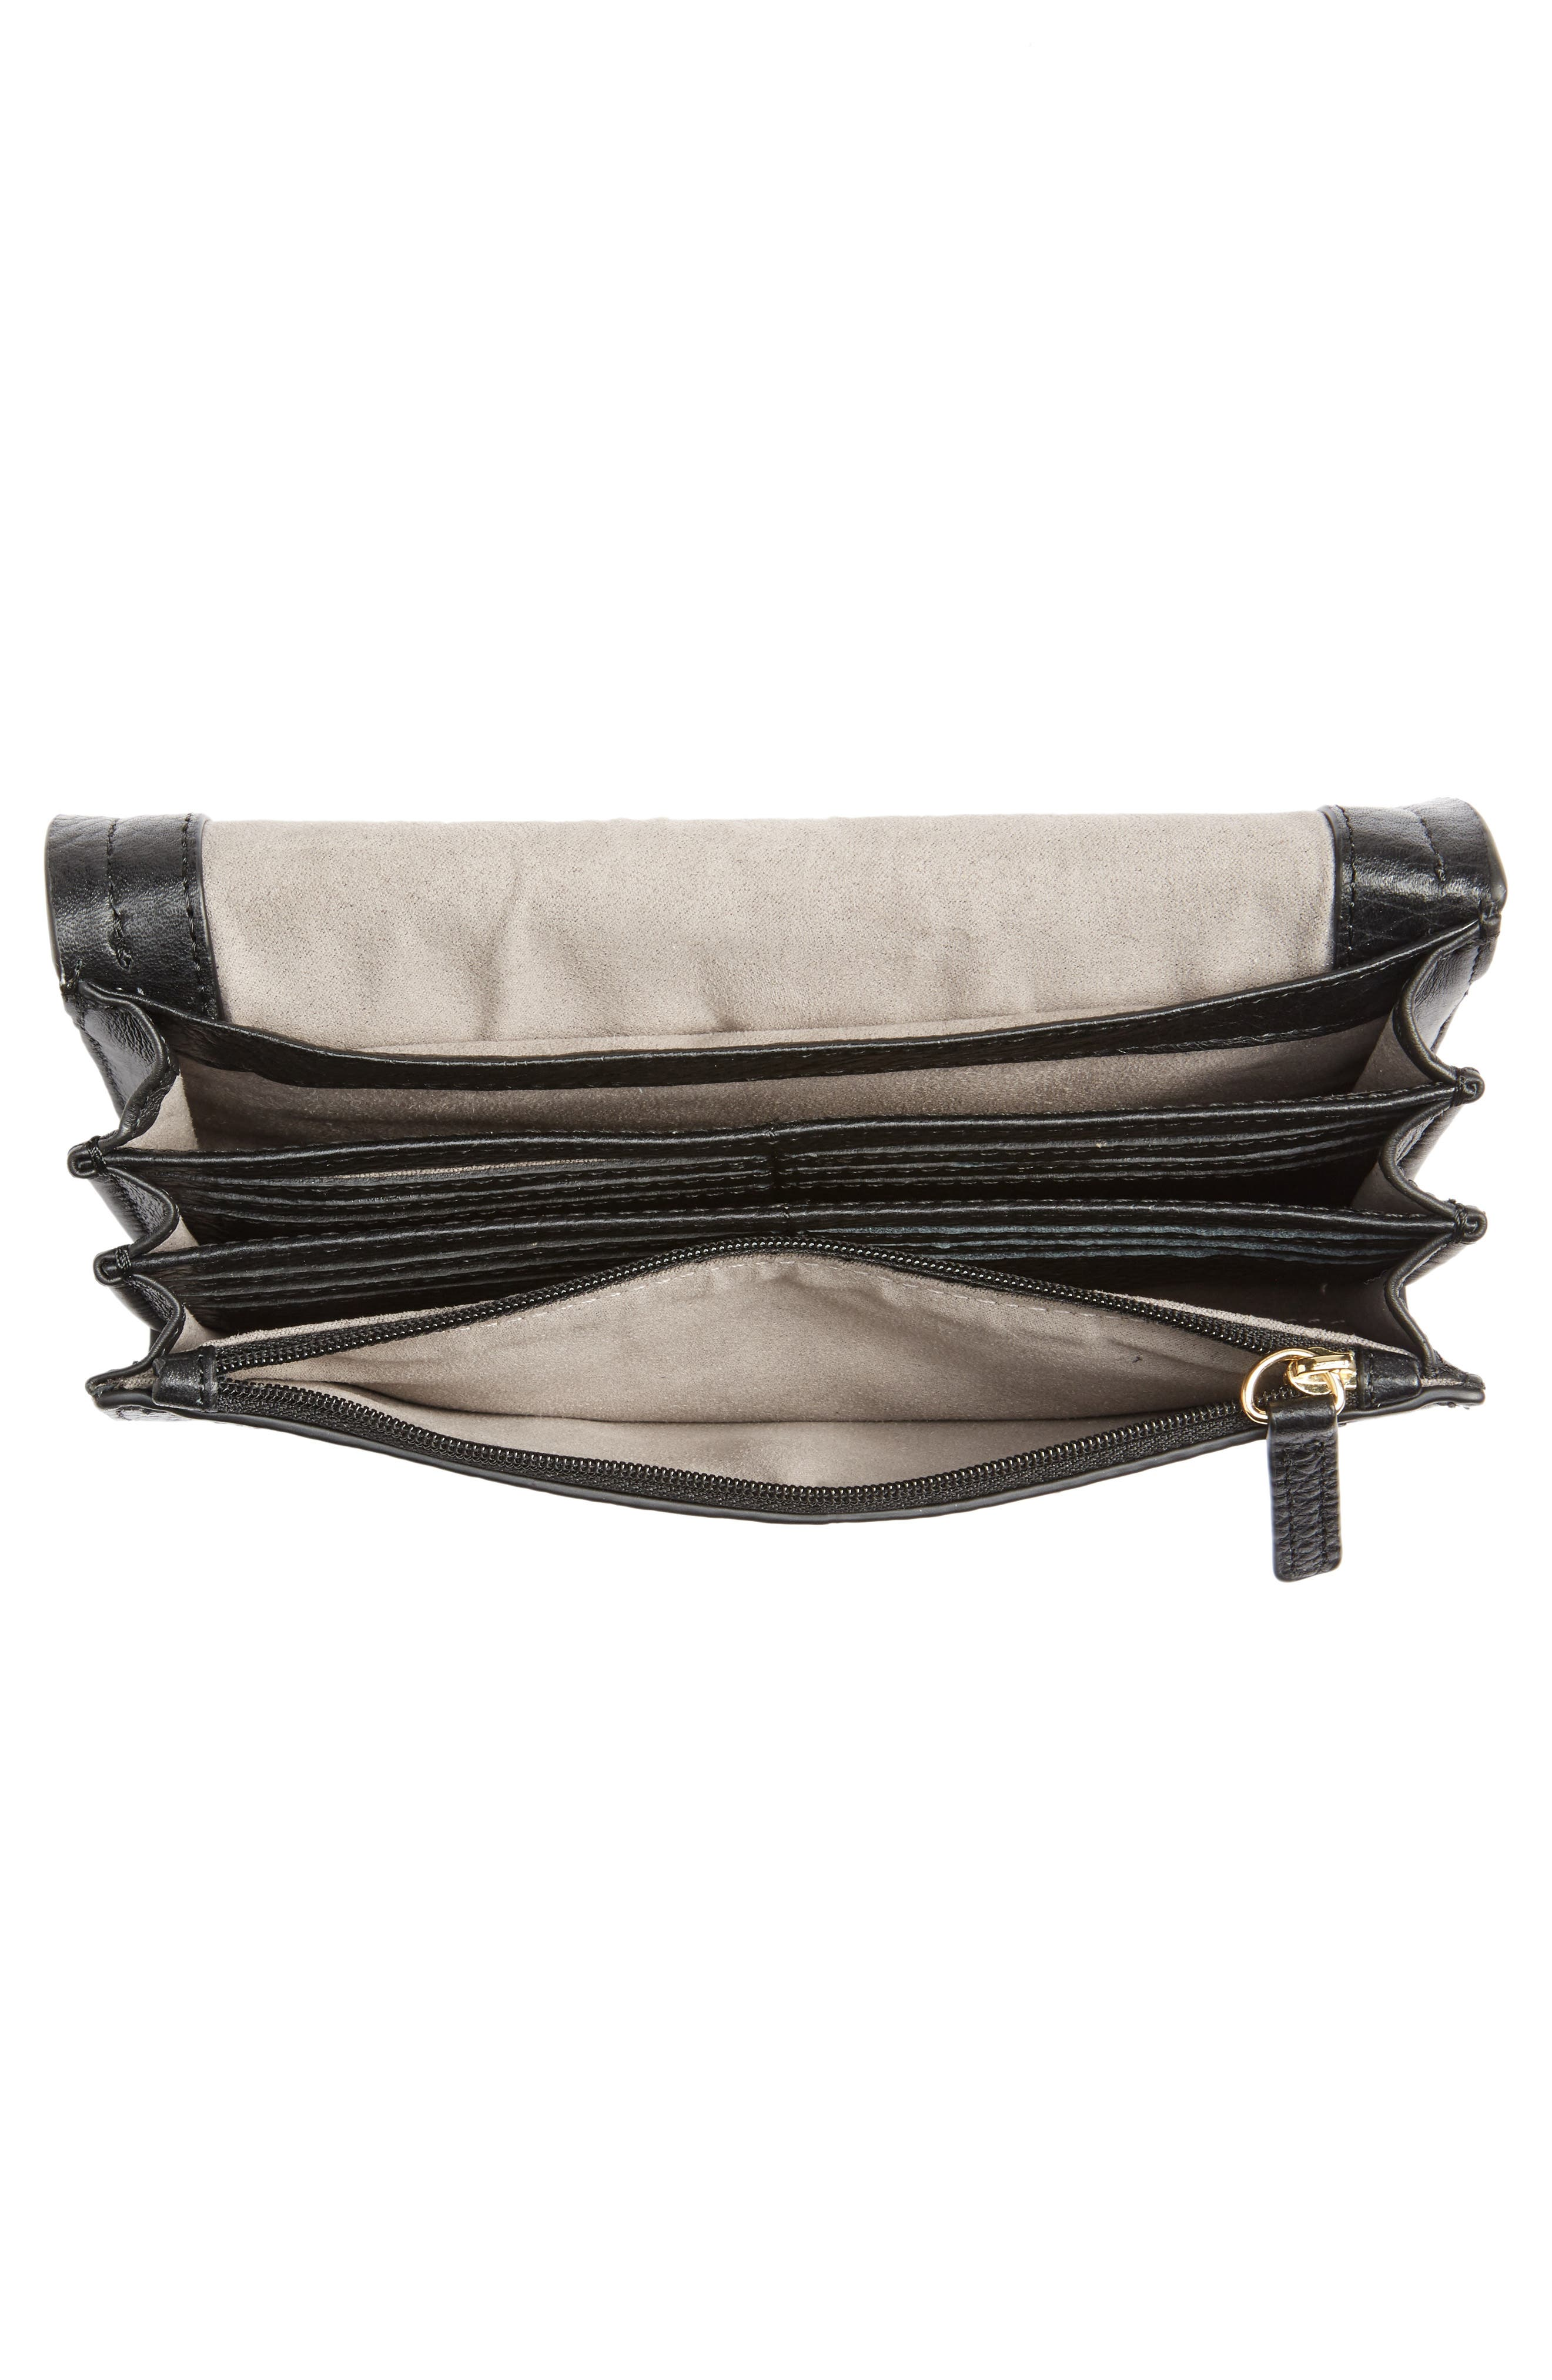 Blena Leather & Suede Clutch,                             Alternate thumbnail 4, color,                             001